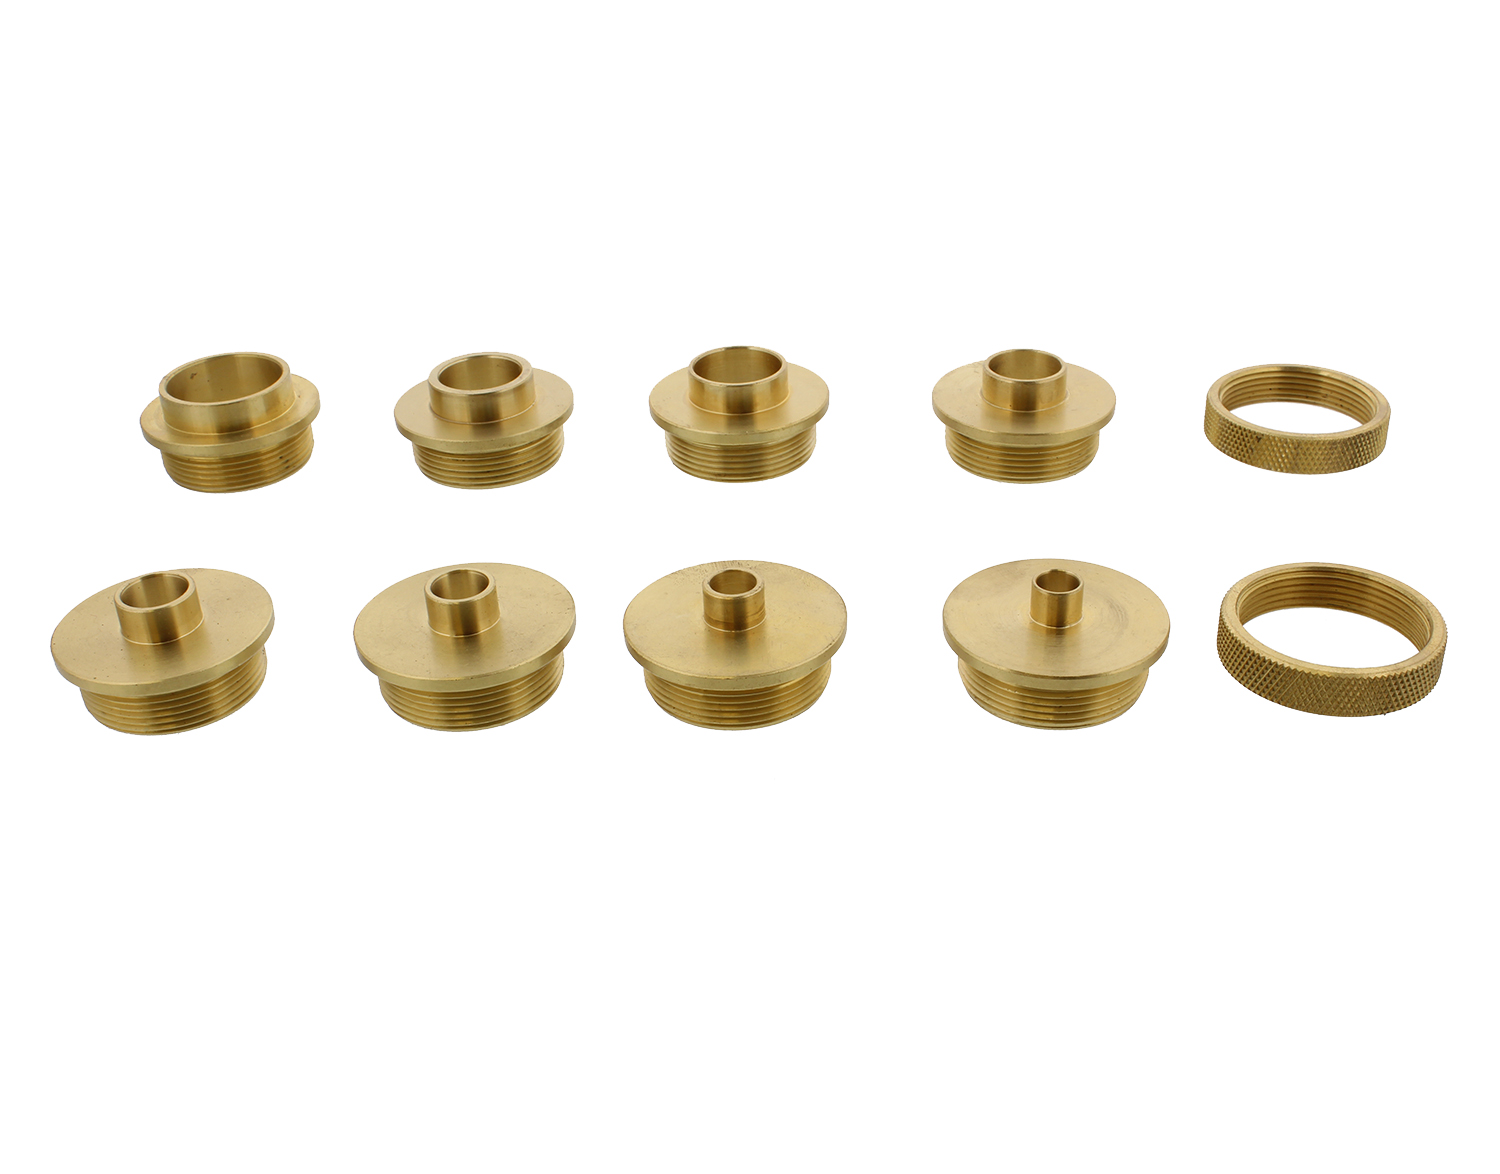 Dct brass router template guides bushing lock nuts 10 for How to use router template guide bushings